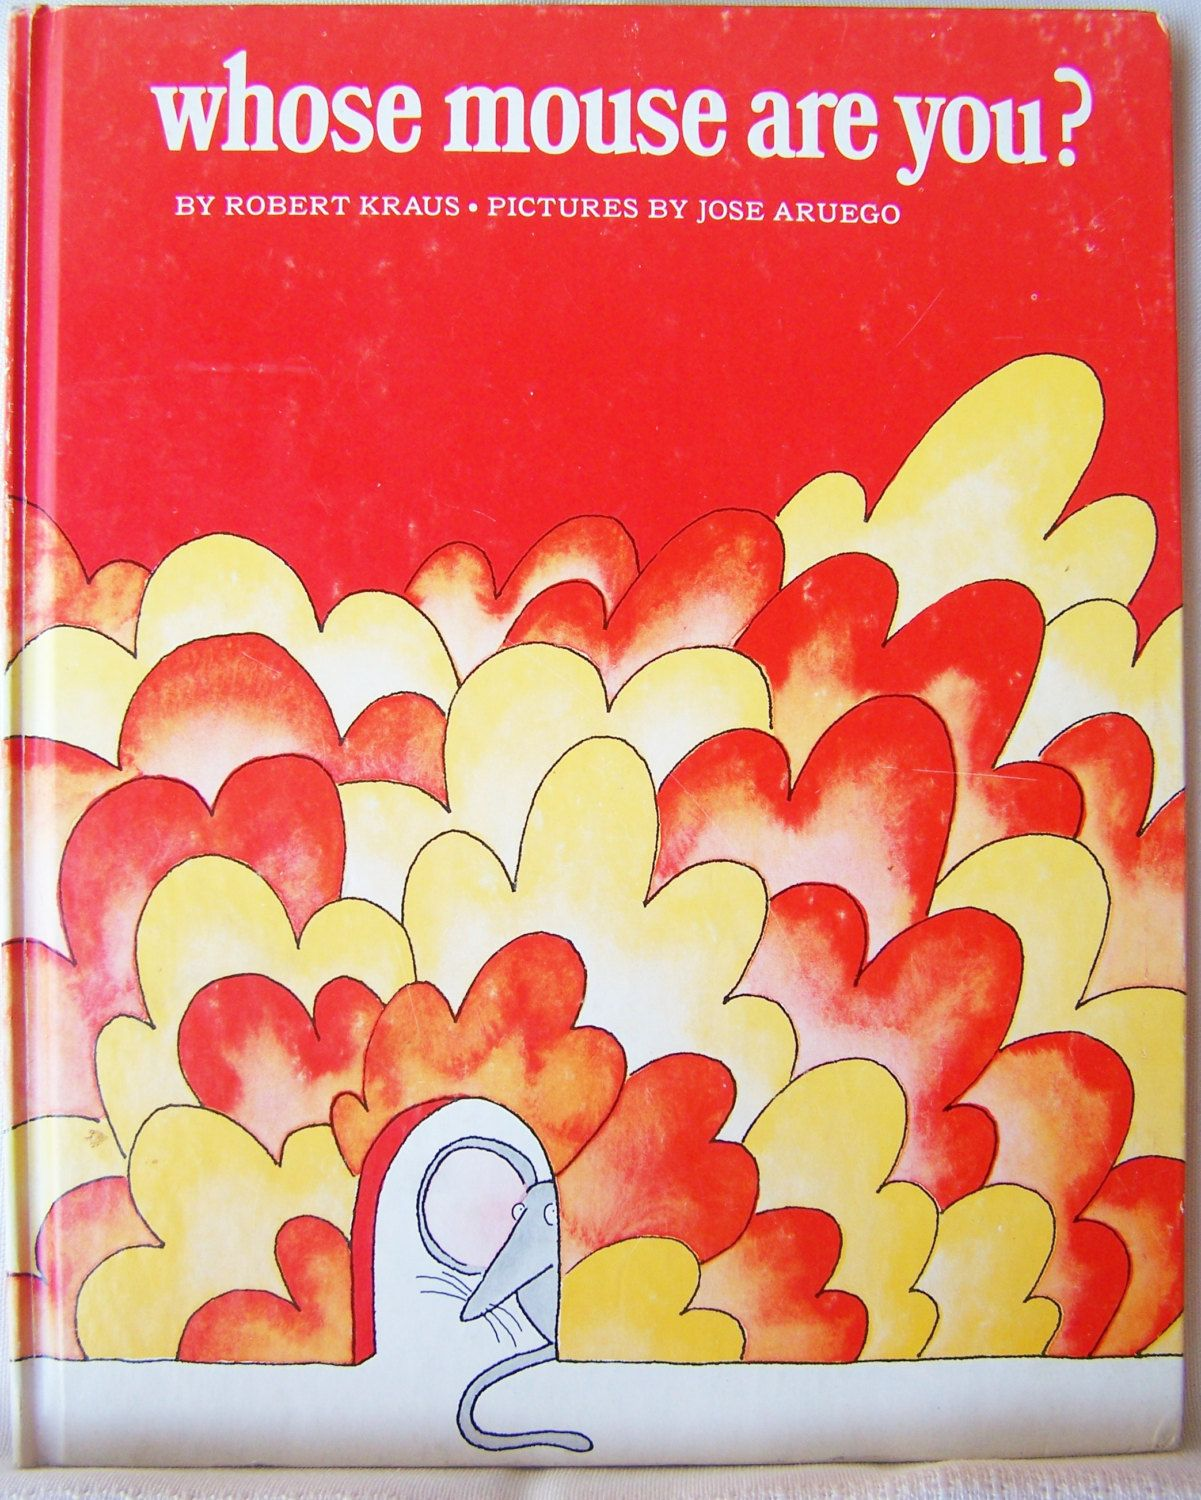 Christmas In July Vintage 1970 Children's Book Whose Mouse Are You? By  Robert Kraus With Pictures By Jose Aruego